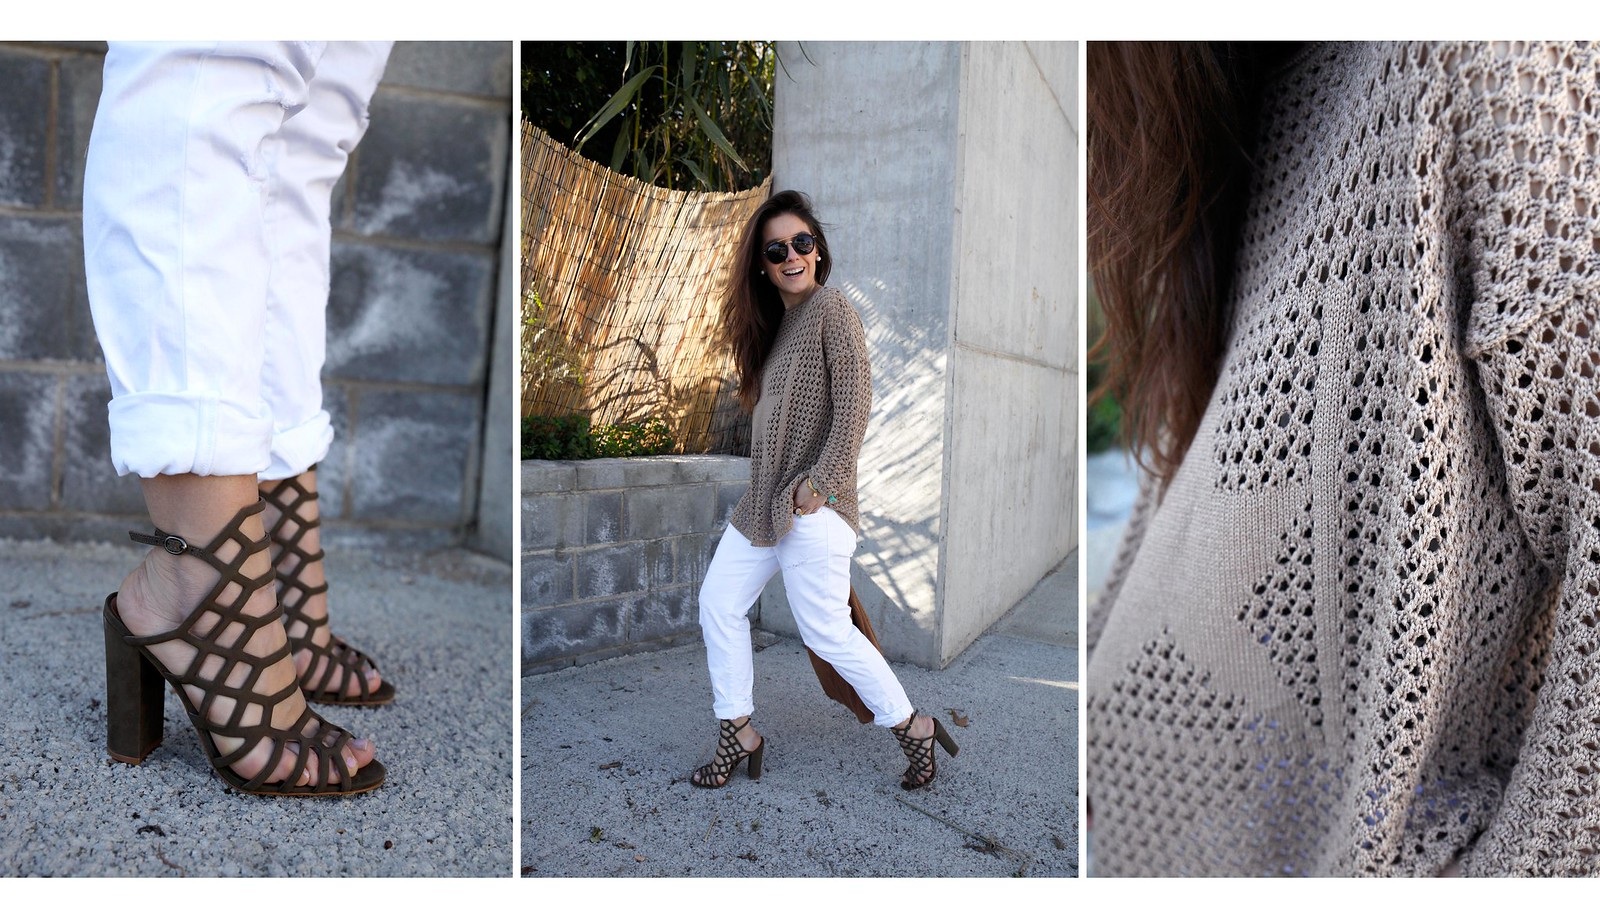 09_SPRING_NEUTRAL_OUTFIT_STREET_STYLE_FASHION_BLOGGER_INFLUENCER_BARCELONA_THEGUESTGIRL